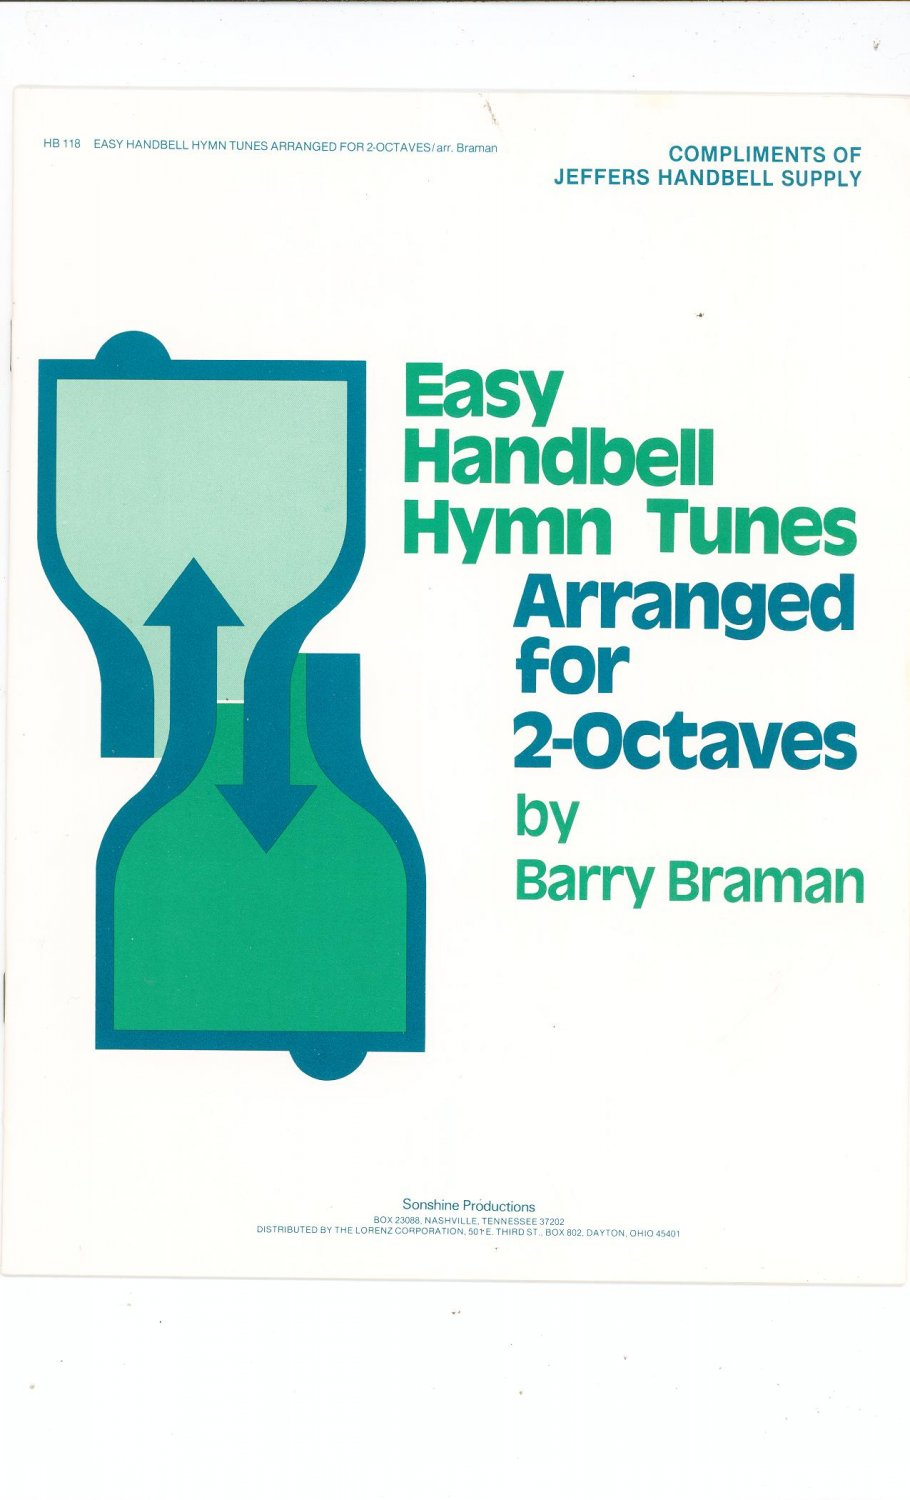 Easy Handbell Hymn Tunes By Barry Braman HB 118